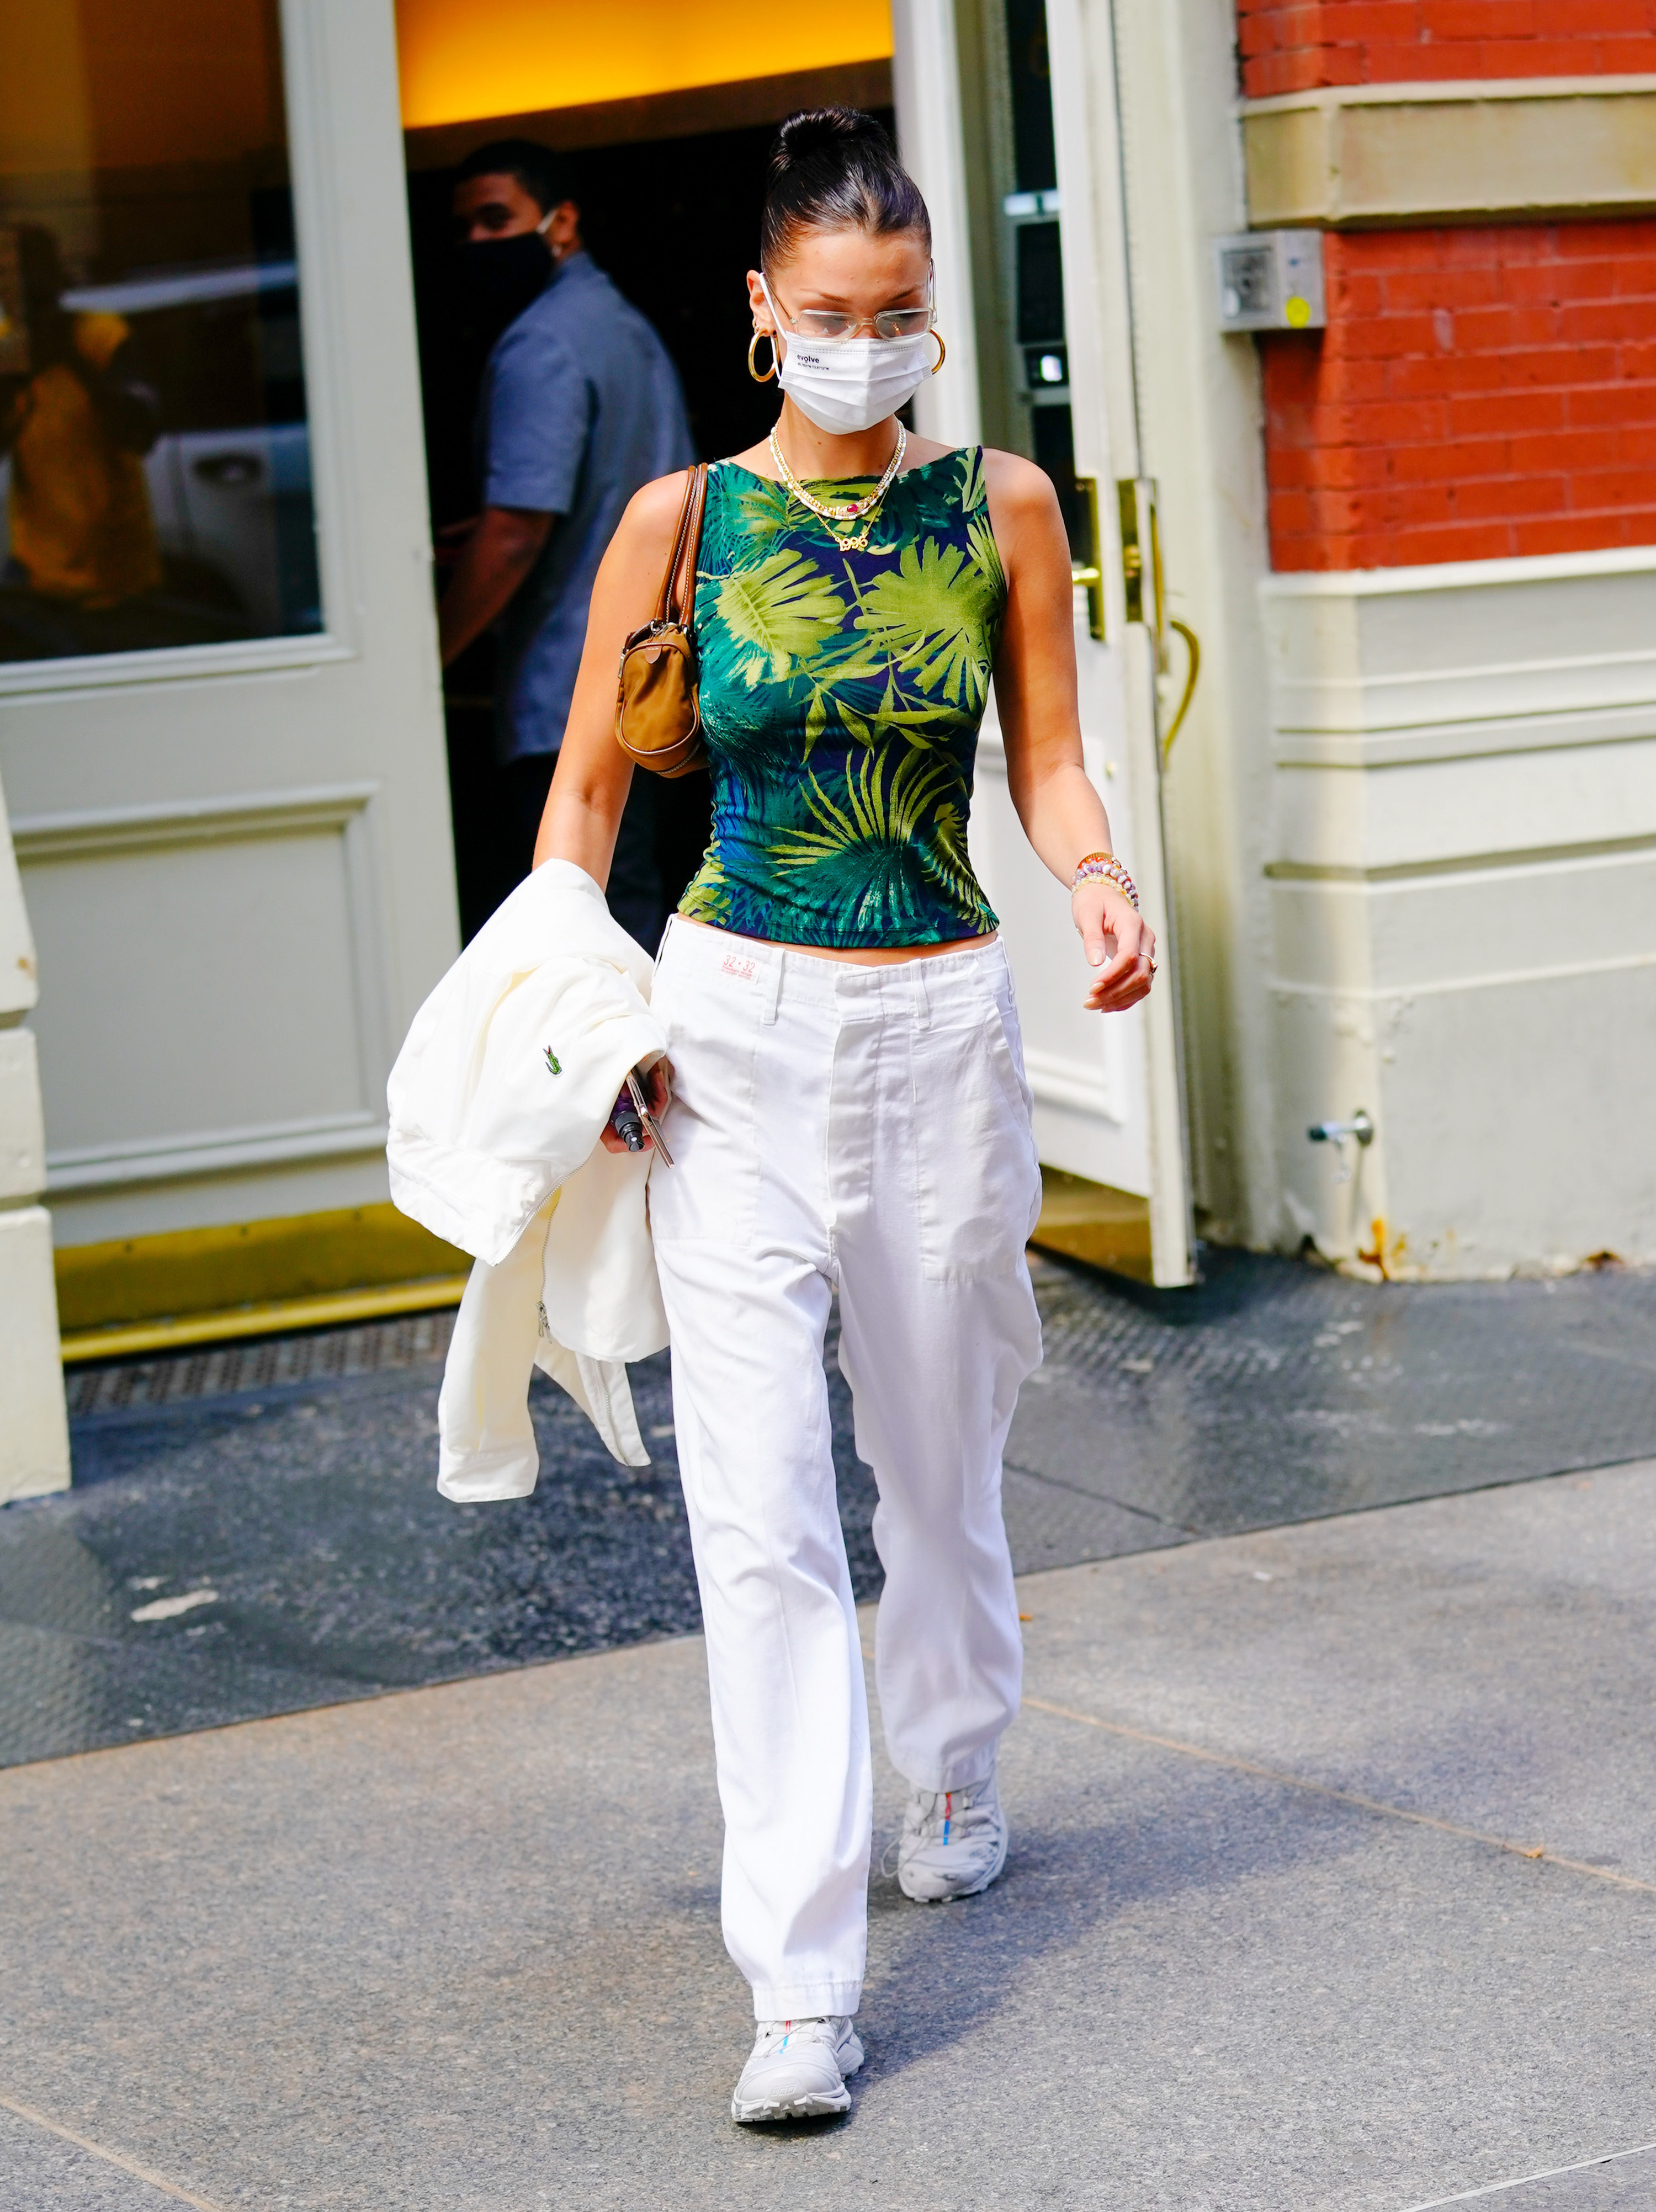 Bella wearing white jeans, sneakers and a printed tank top